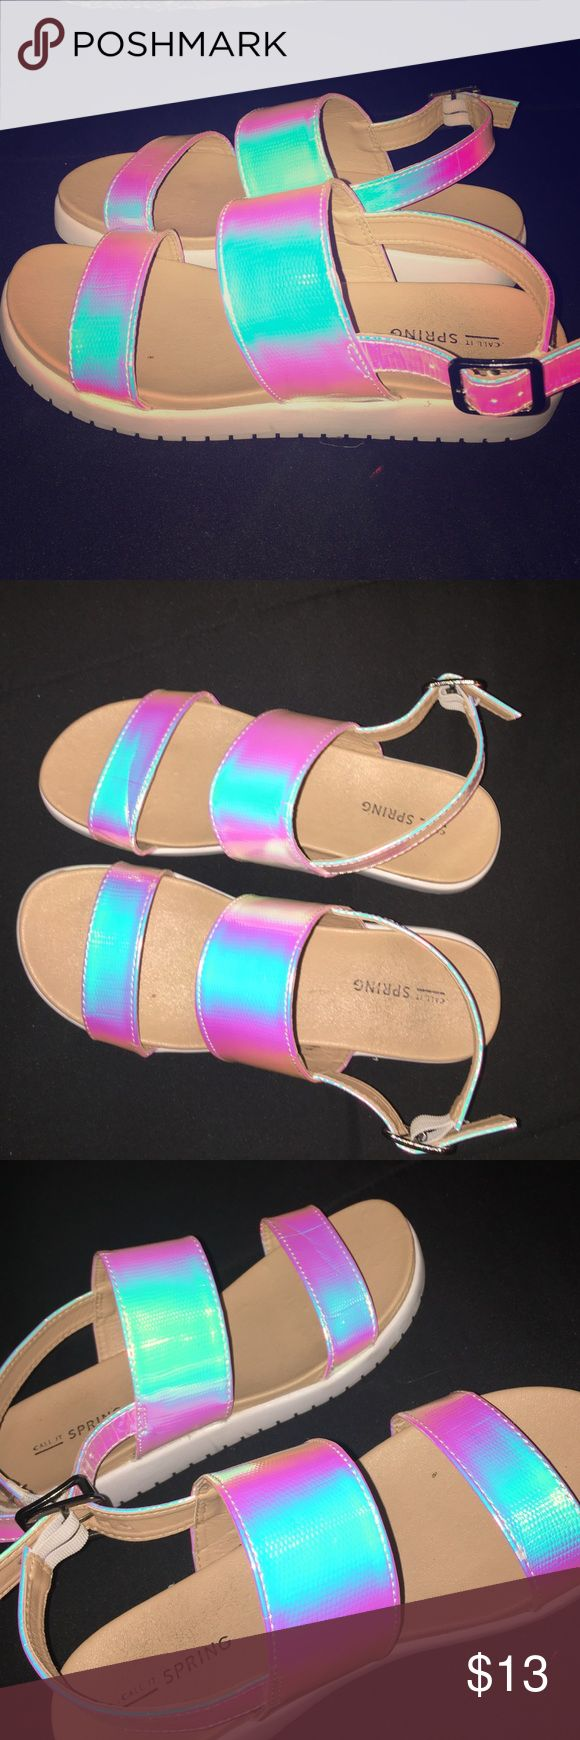 Holographic neon sandals Cushion bottom, trendy look Call It Spring Shoes Sandals